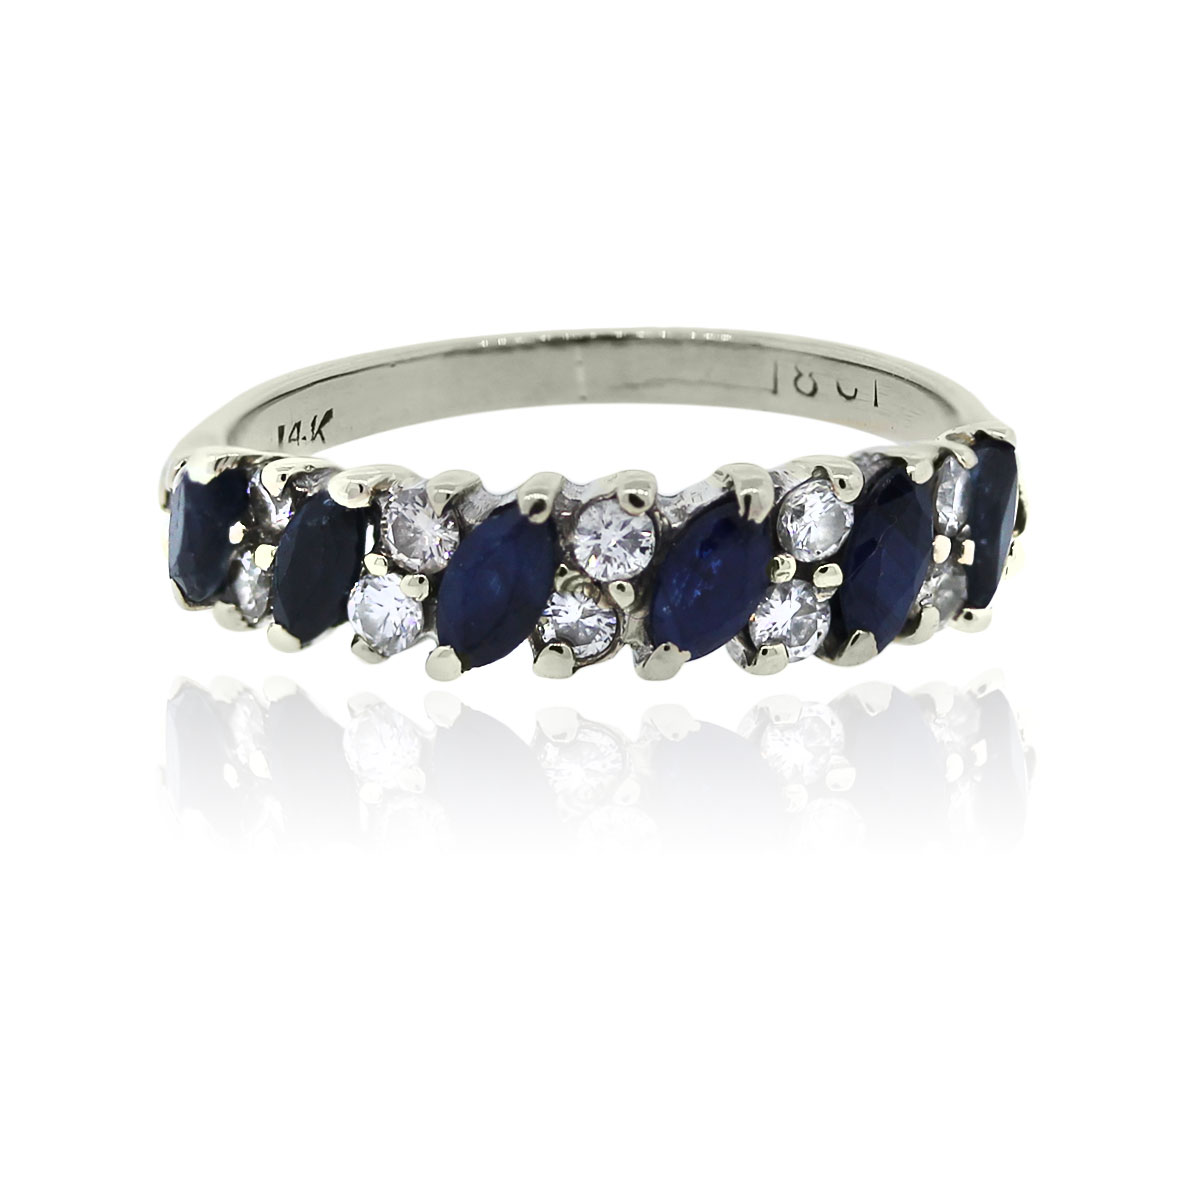 You are viewing this 14k White Gold Double Row Diamond Marquise Sapphire Ring!